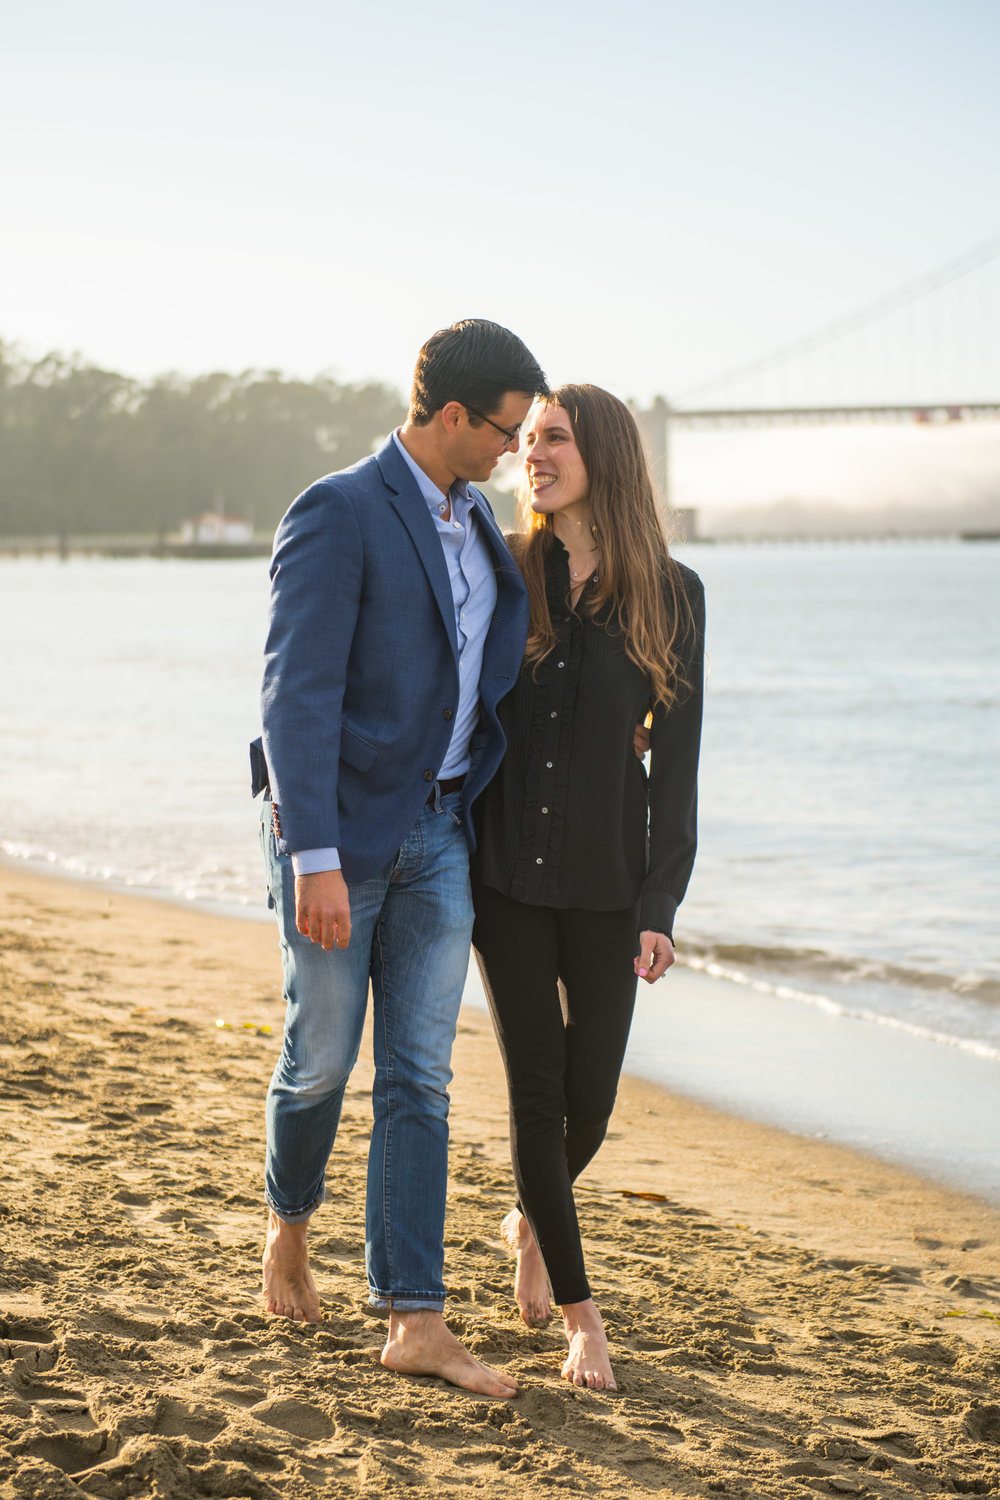 Crissy-Field-Engagement-Photography-2.jpg